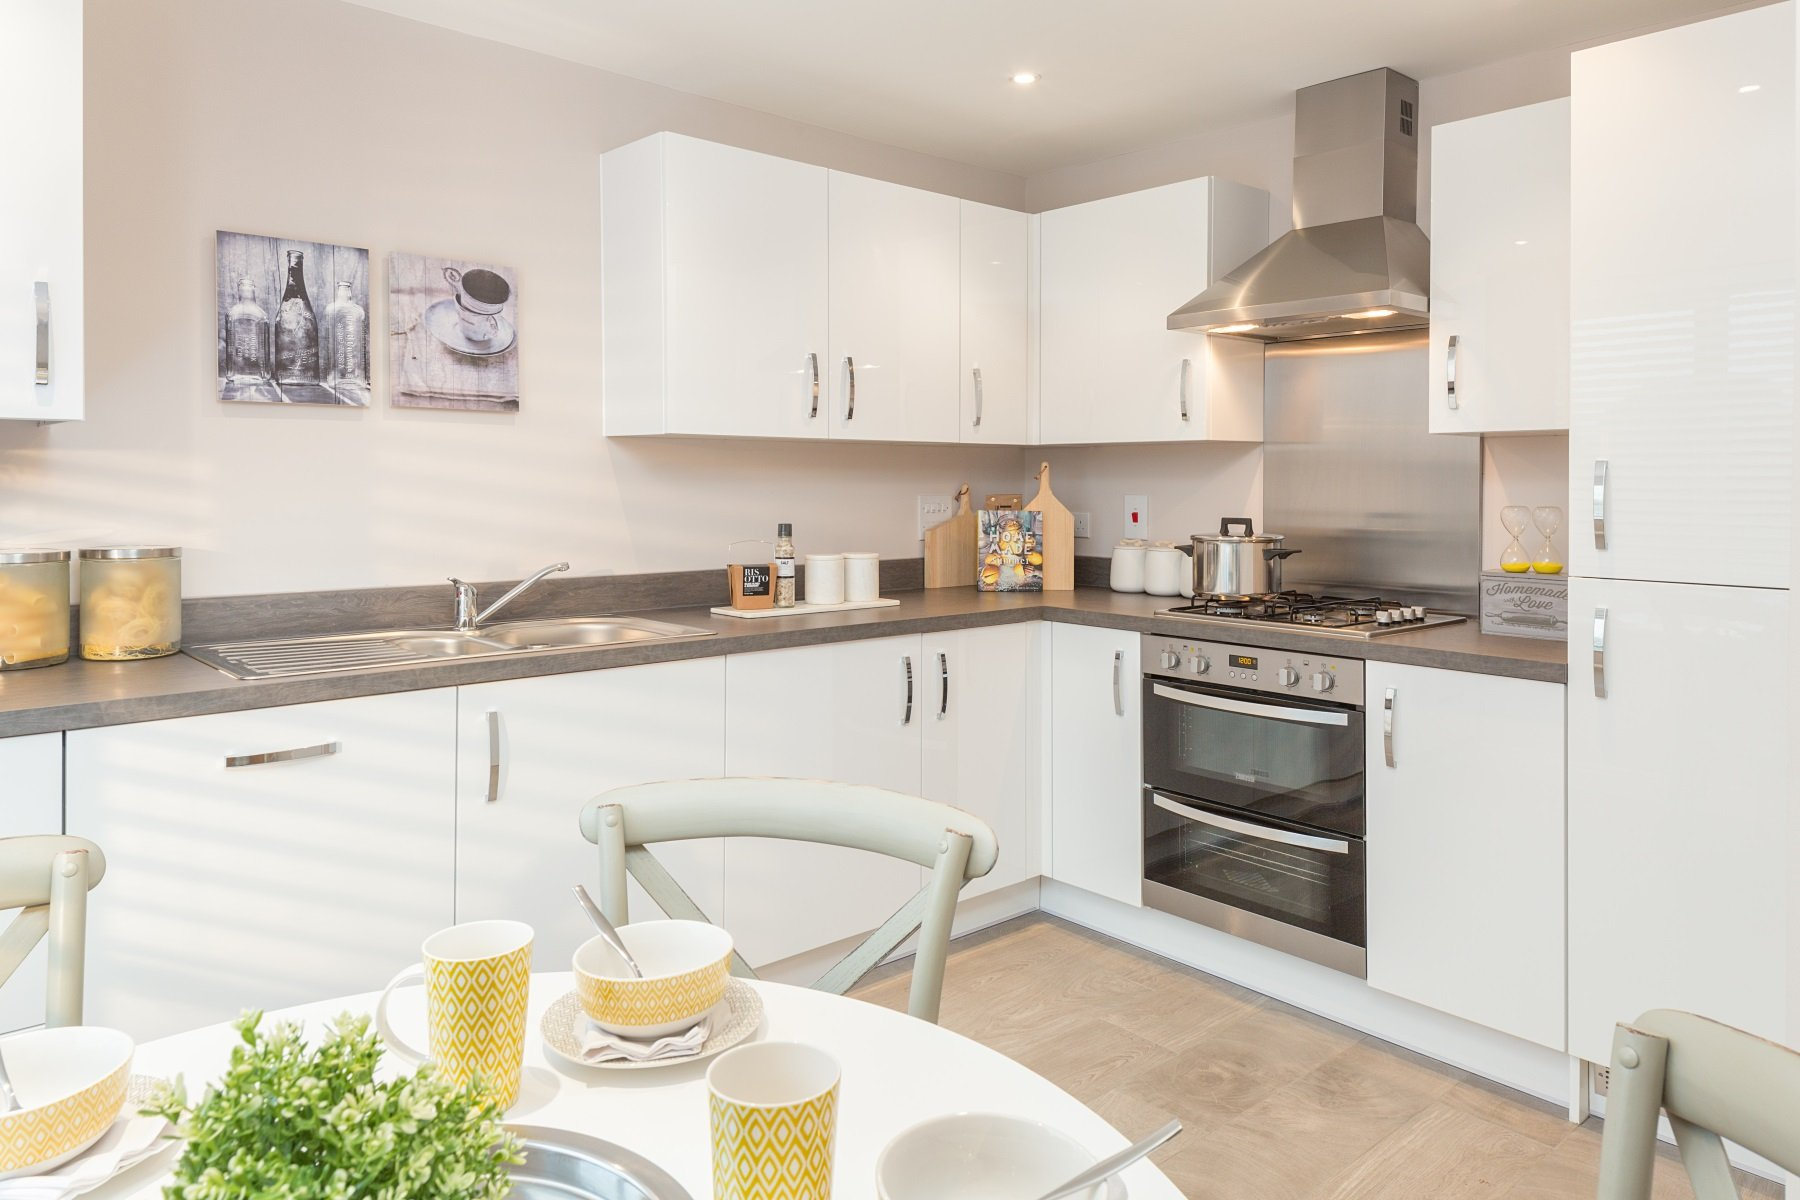 TW Exeter - Rackenford Meadow - Flatford example kitchen